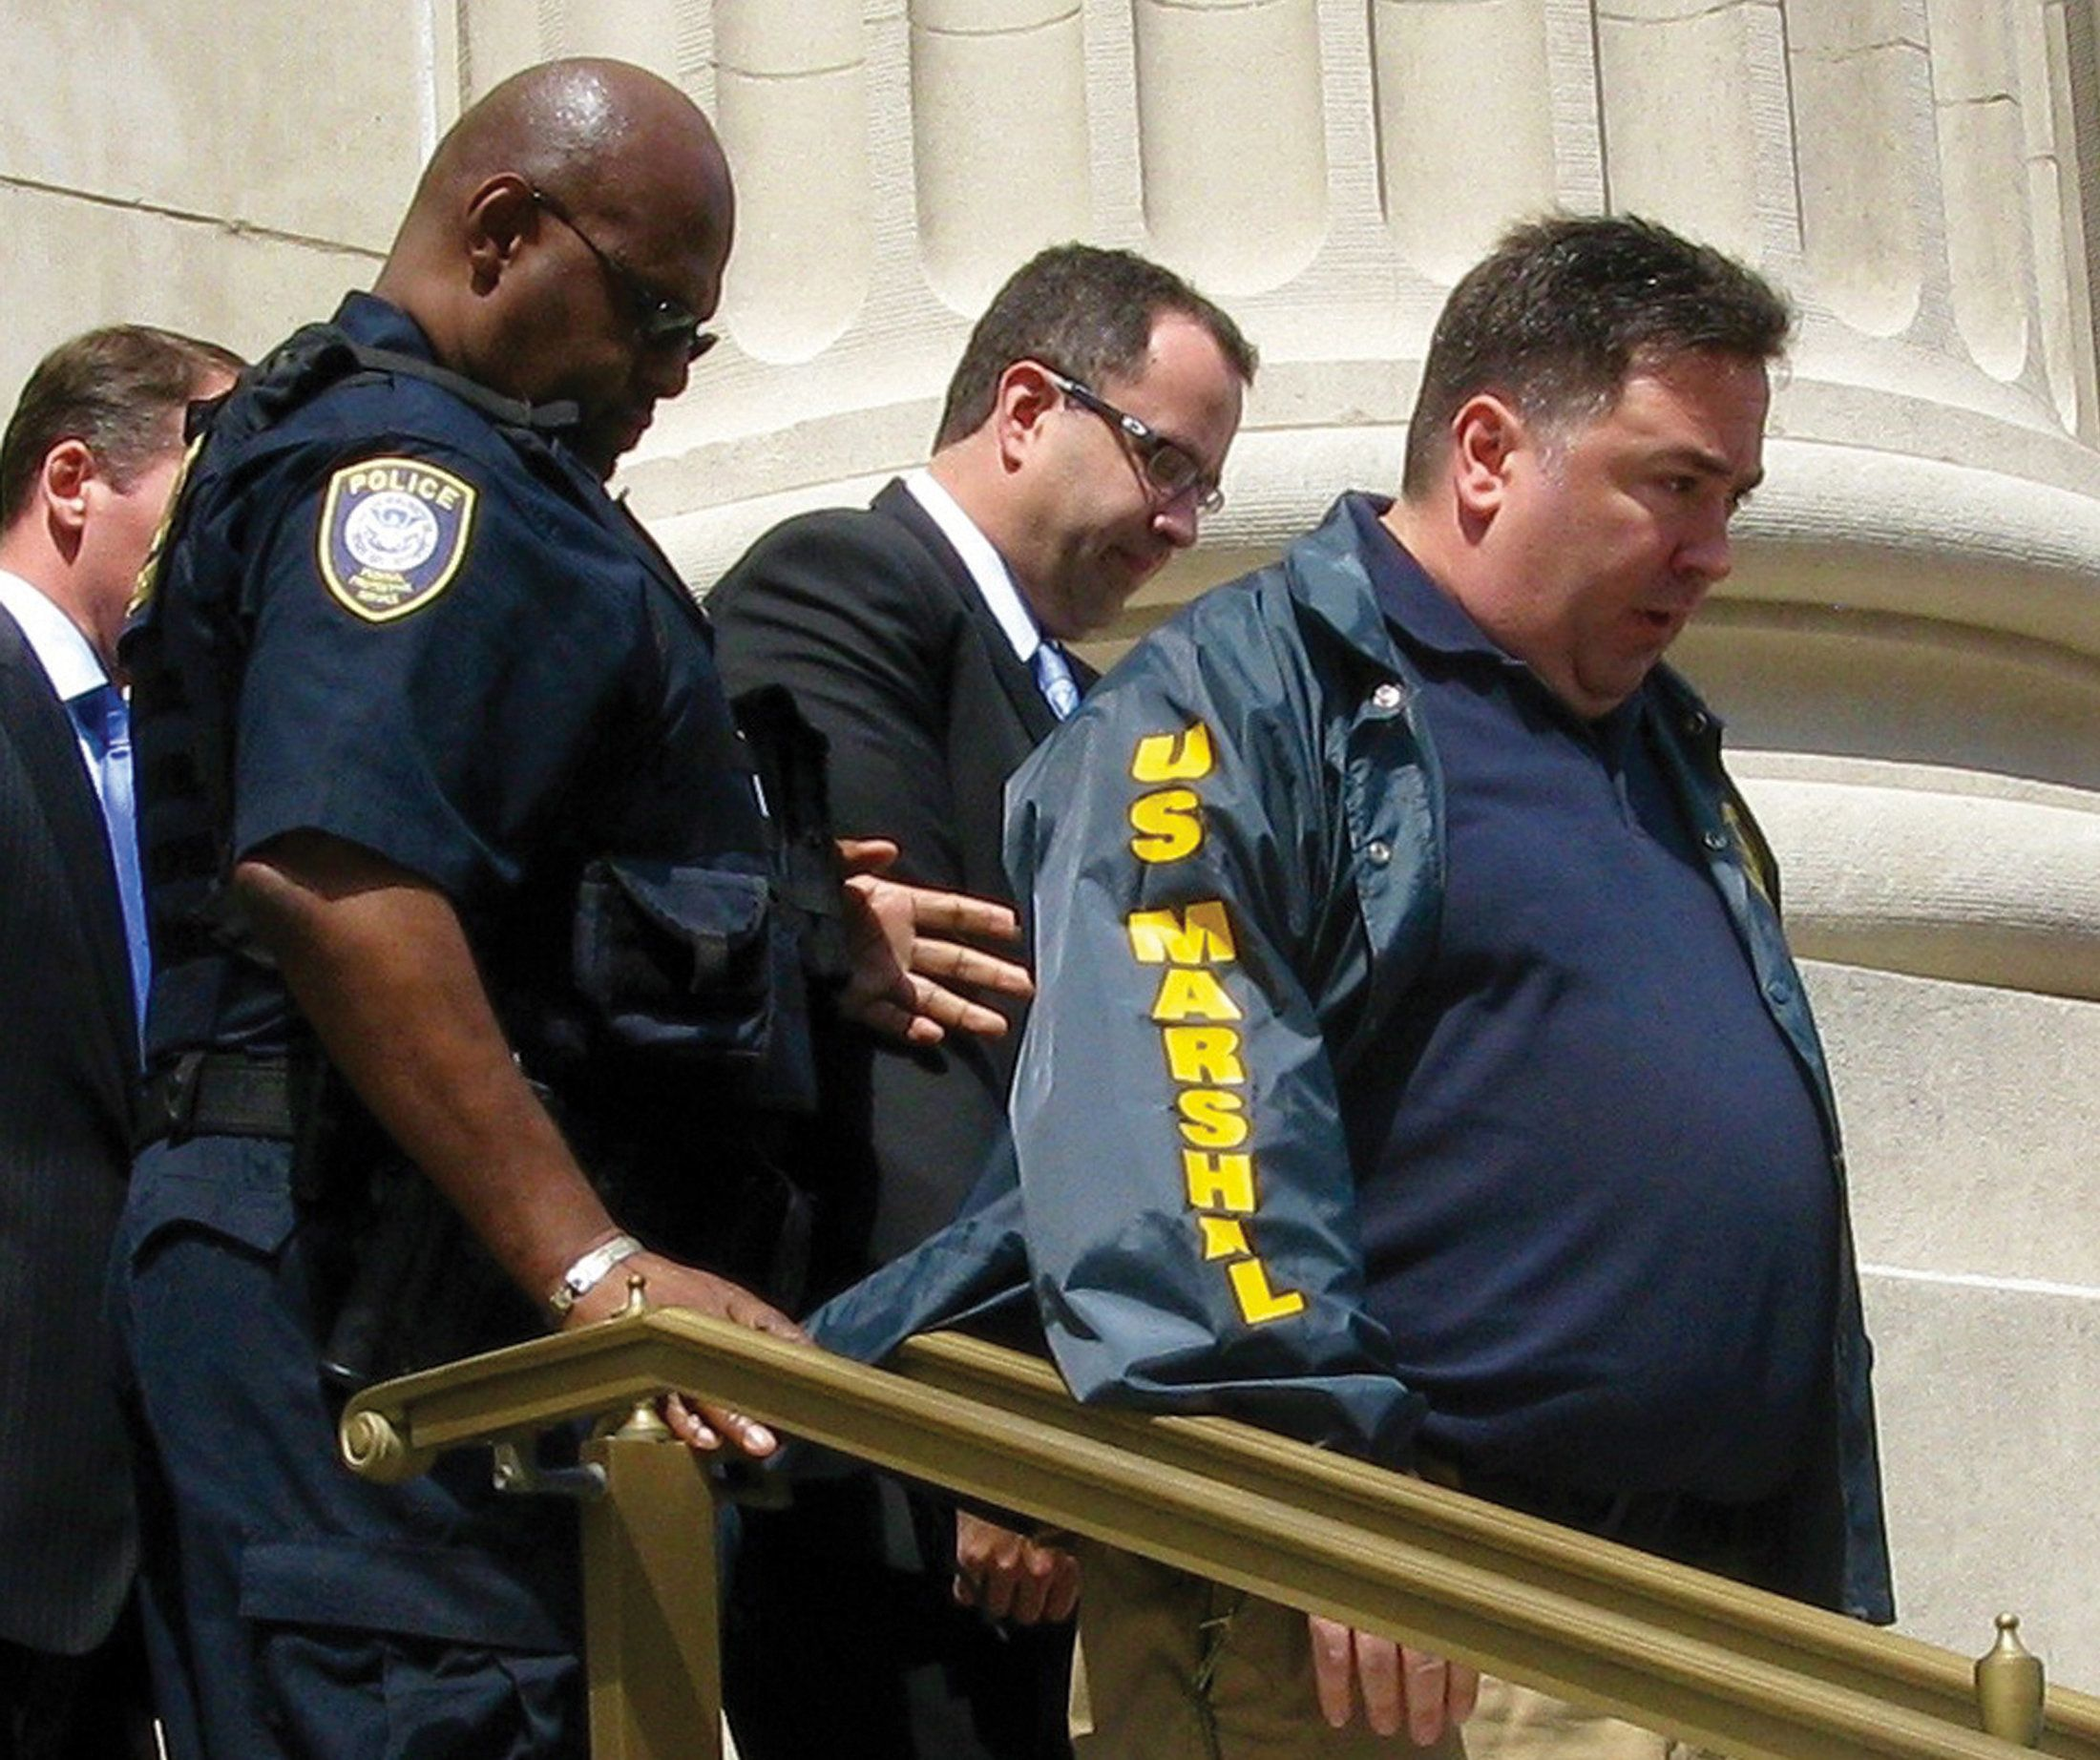 Jared Fogle is led from federal court in Indianapolis, Indiana August 19, 2015.  Fogle, the former Subway sandwich chain pitchman asked a federal judge on Wednesday to accept his plea of guilty to charges of child pornography and travelling for illicit paid sex with minors.  REUTERS/Susan Guyett